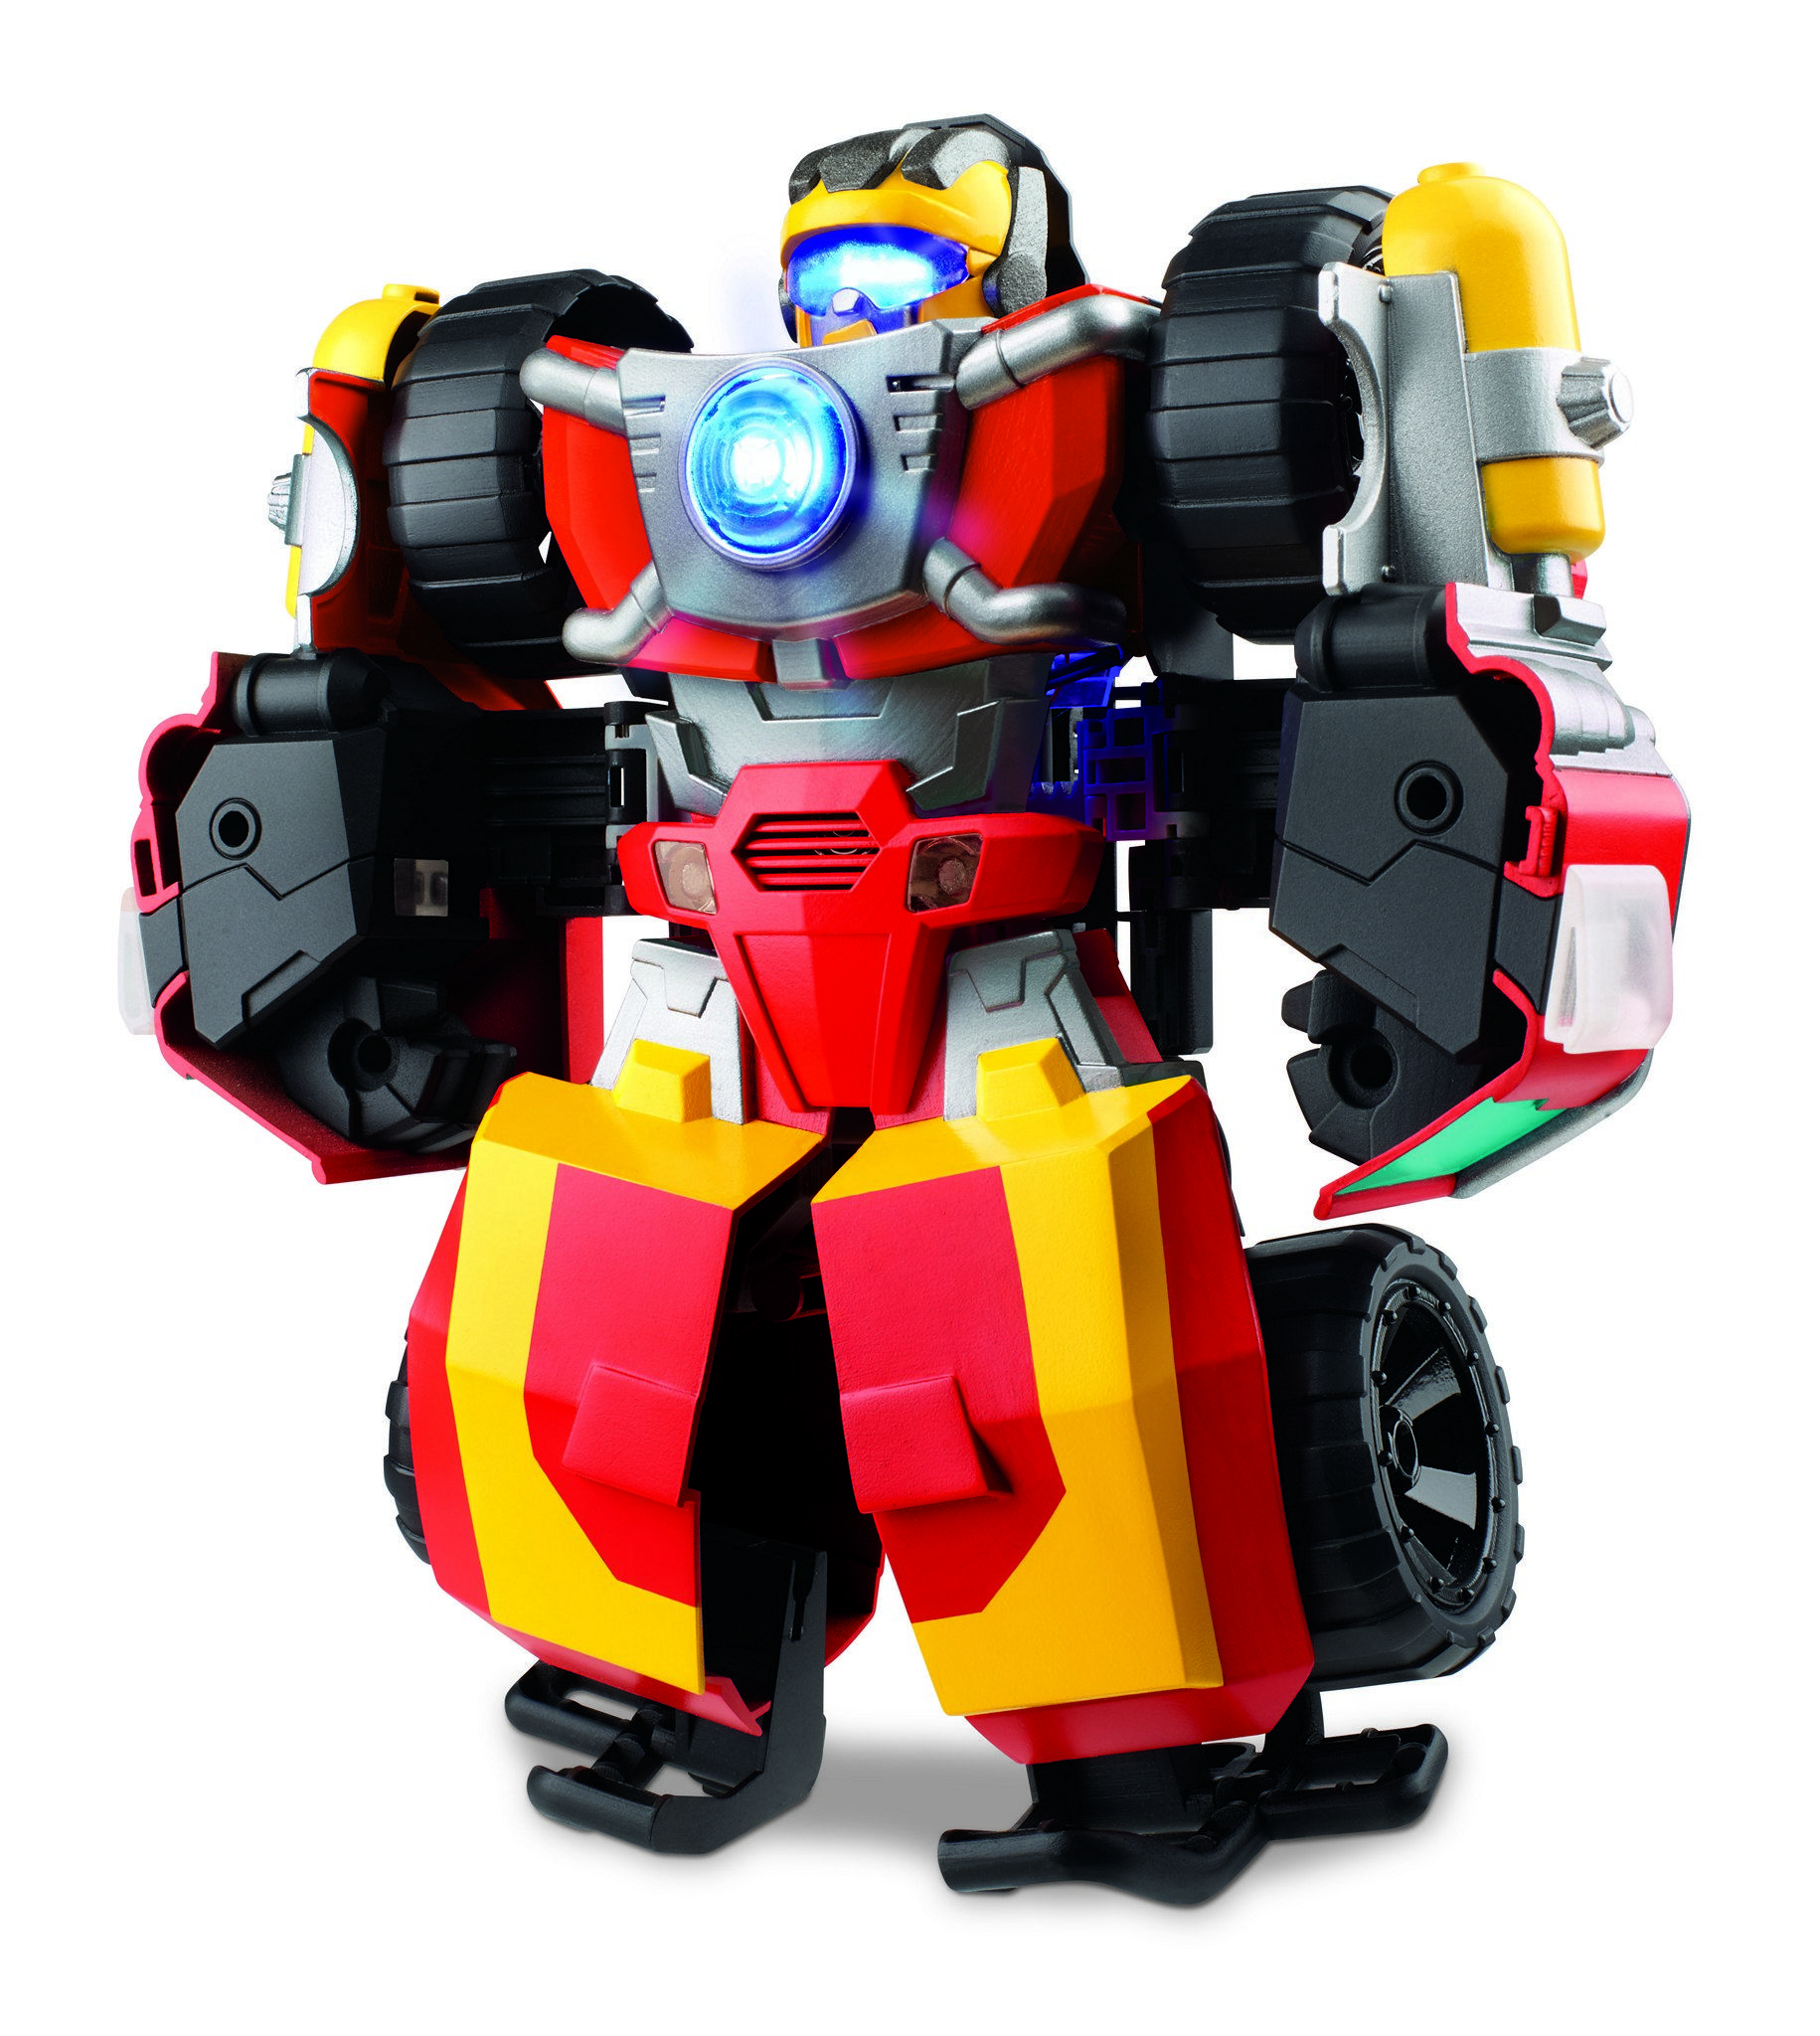 Official Images For Transformers Rescue Bots Hot Shot Guard Bumblebee Knight Watch